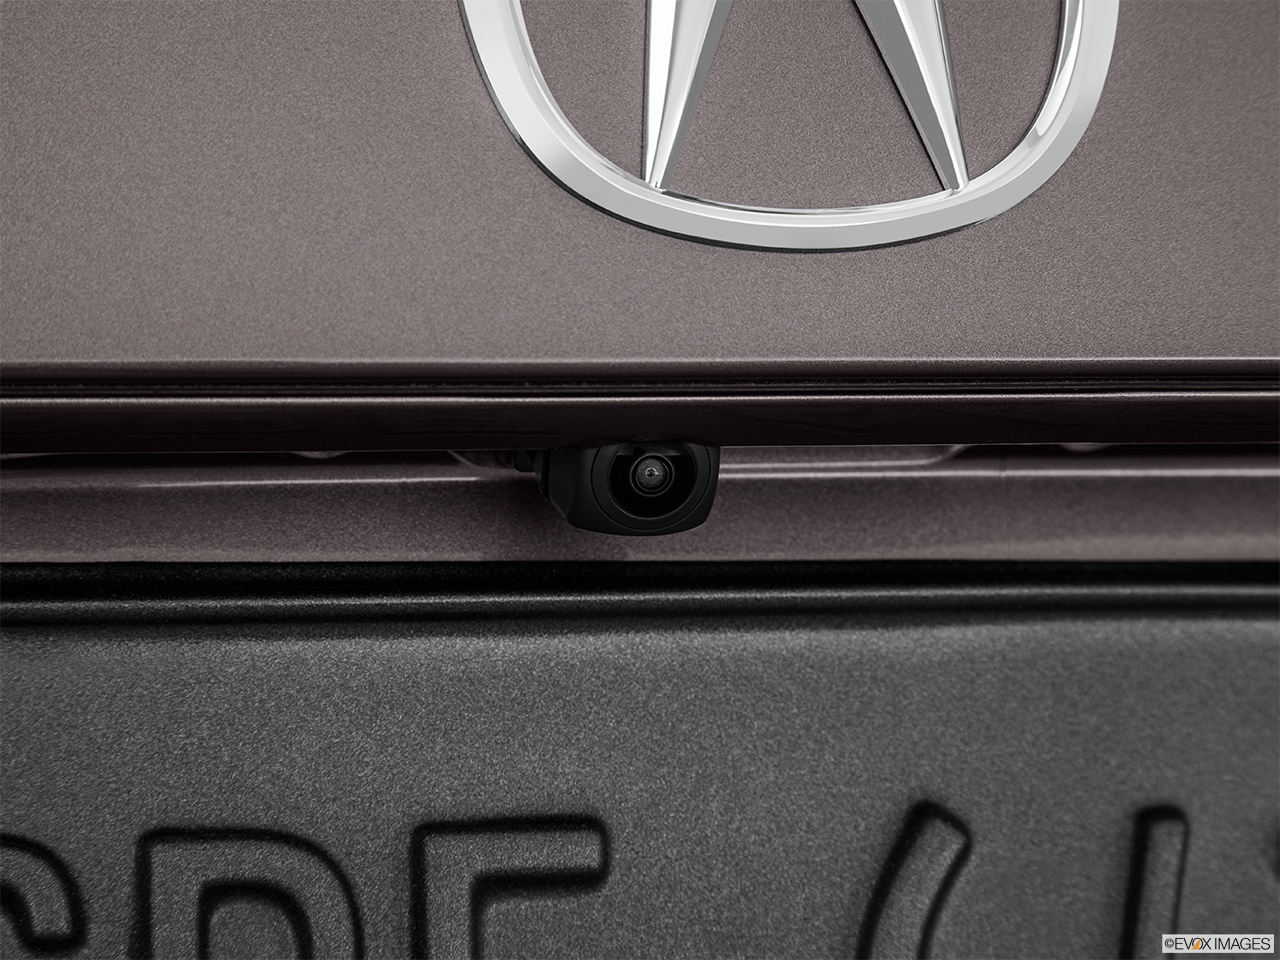 2014 Acura ILX Hybrid Base Rear Back-up Camera